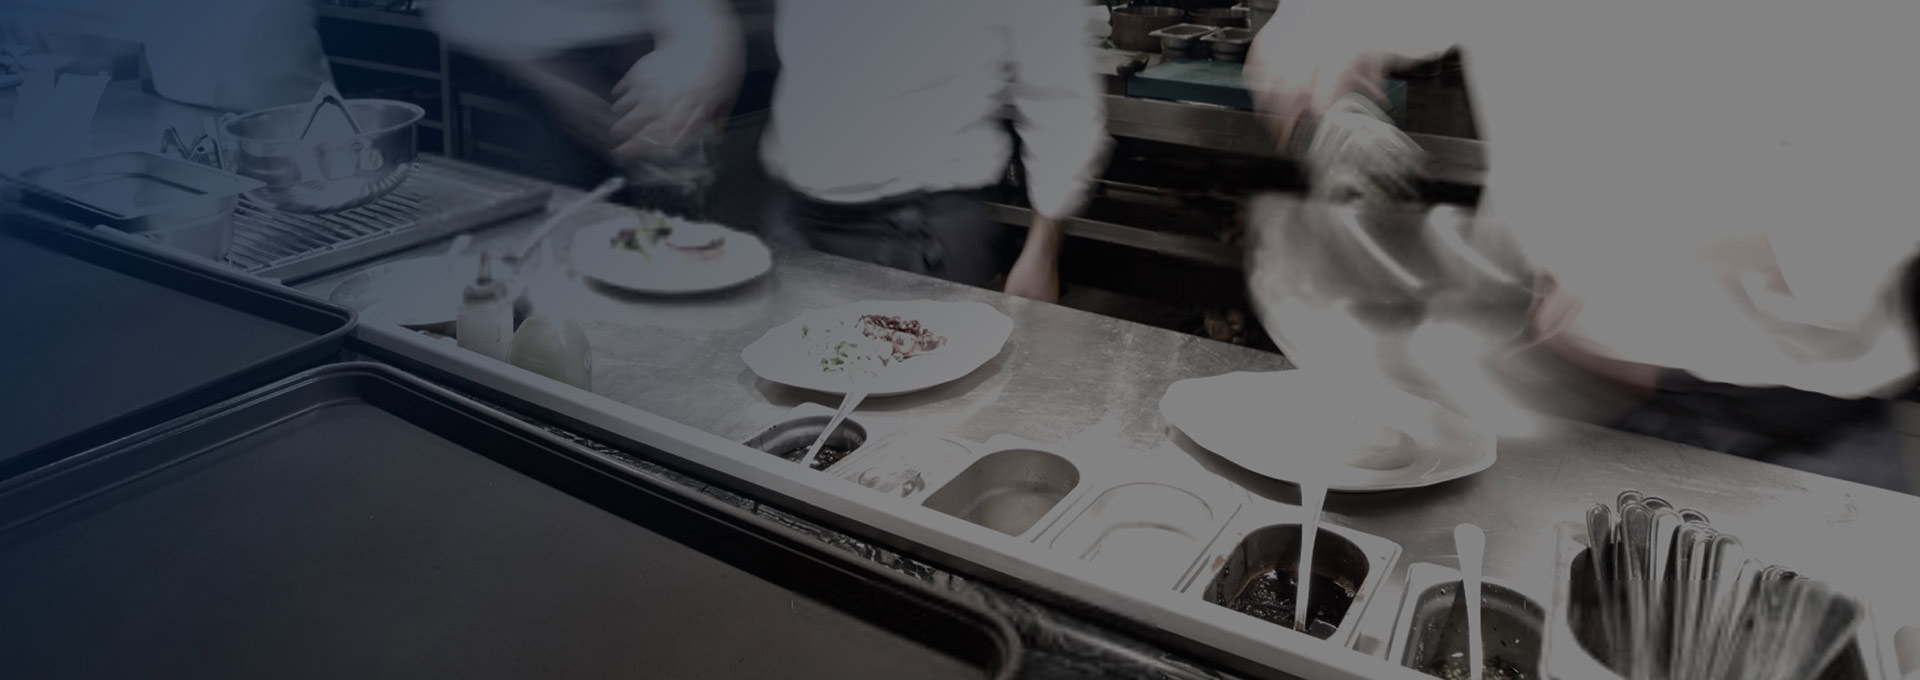 Line cooks prepping food in fast pace kitchen with blue gradient overlay